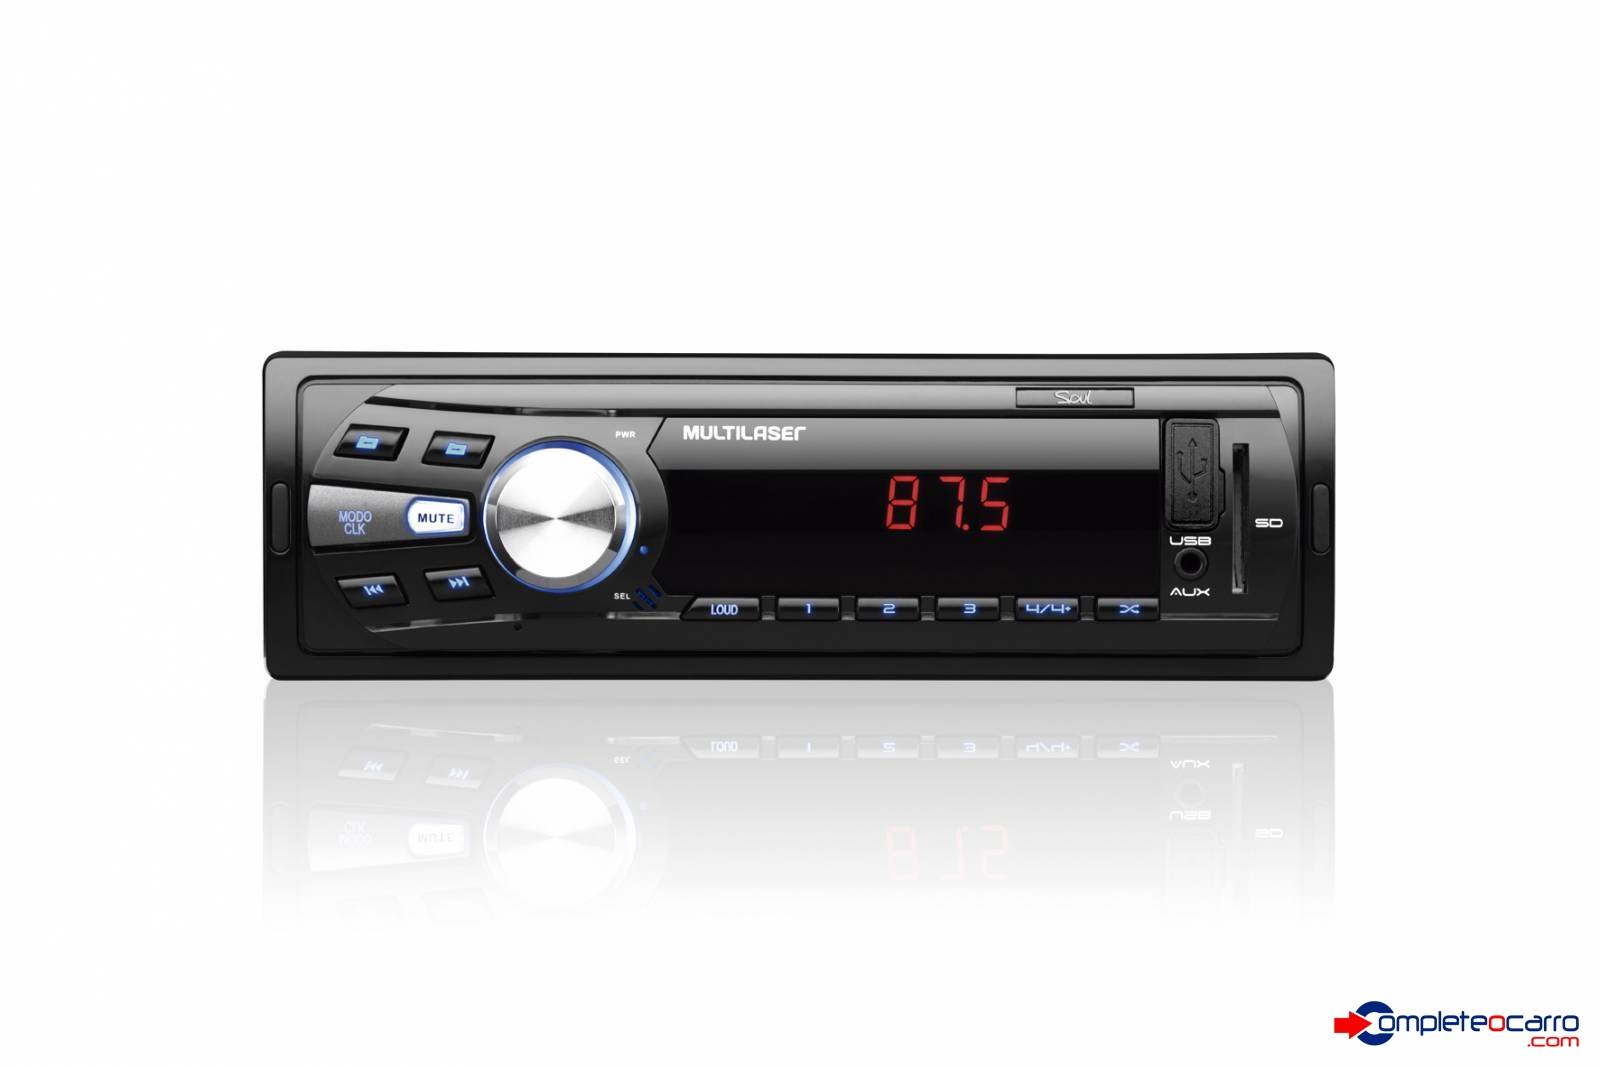 Rádio Automotivo Multilaser P3294, Fm, Usb, Aux, Sd - Complete o Carro